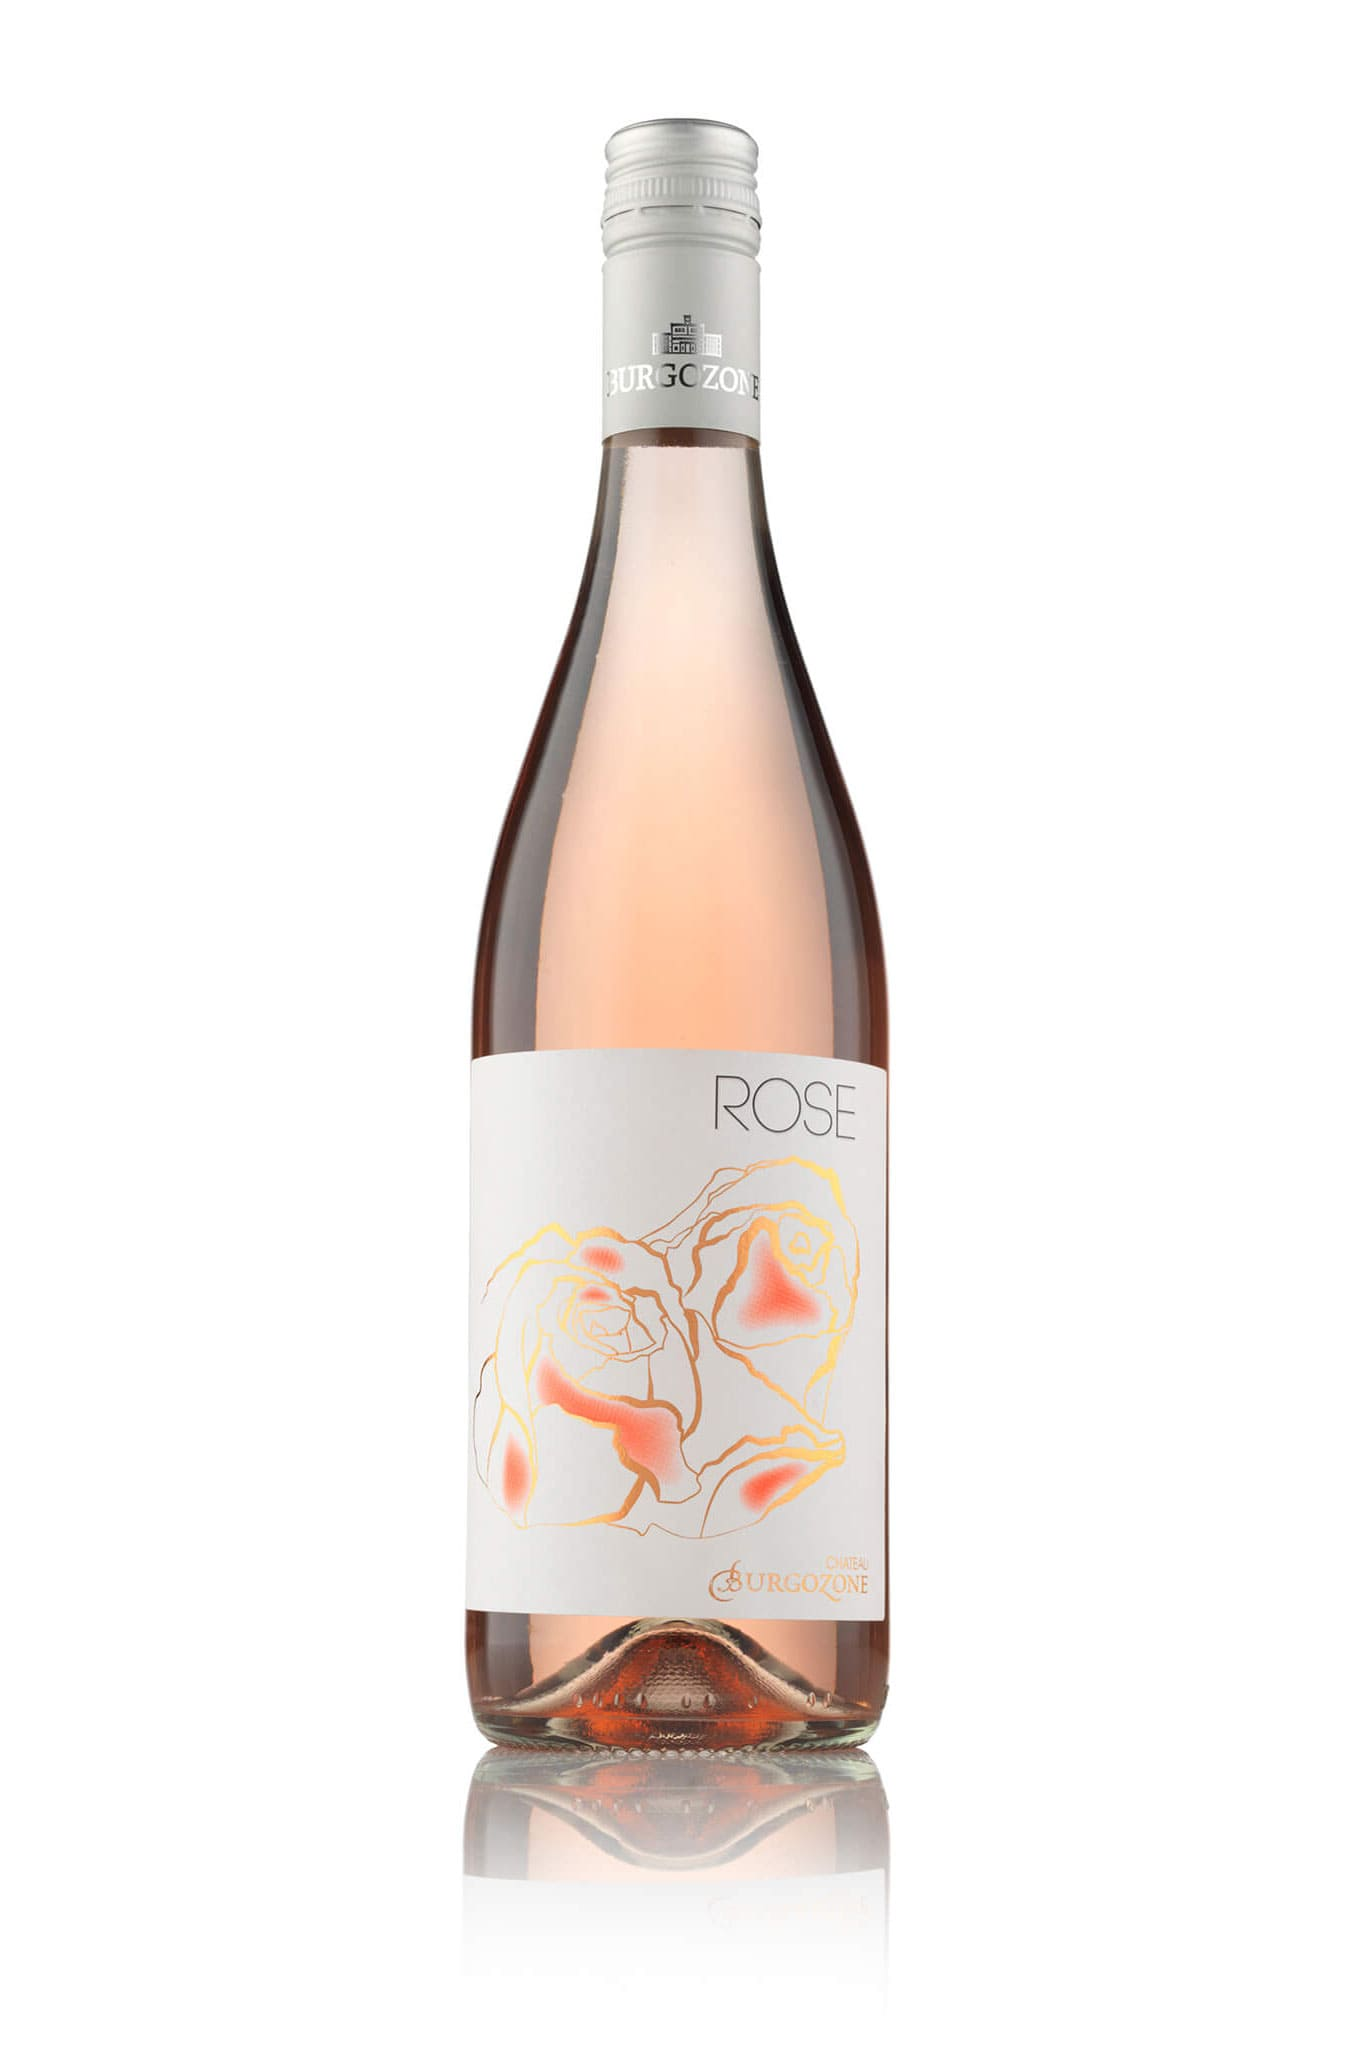 Chateau Burgozone Rose